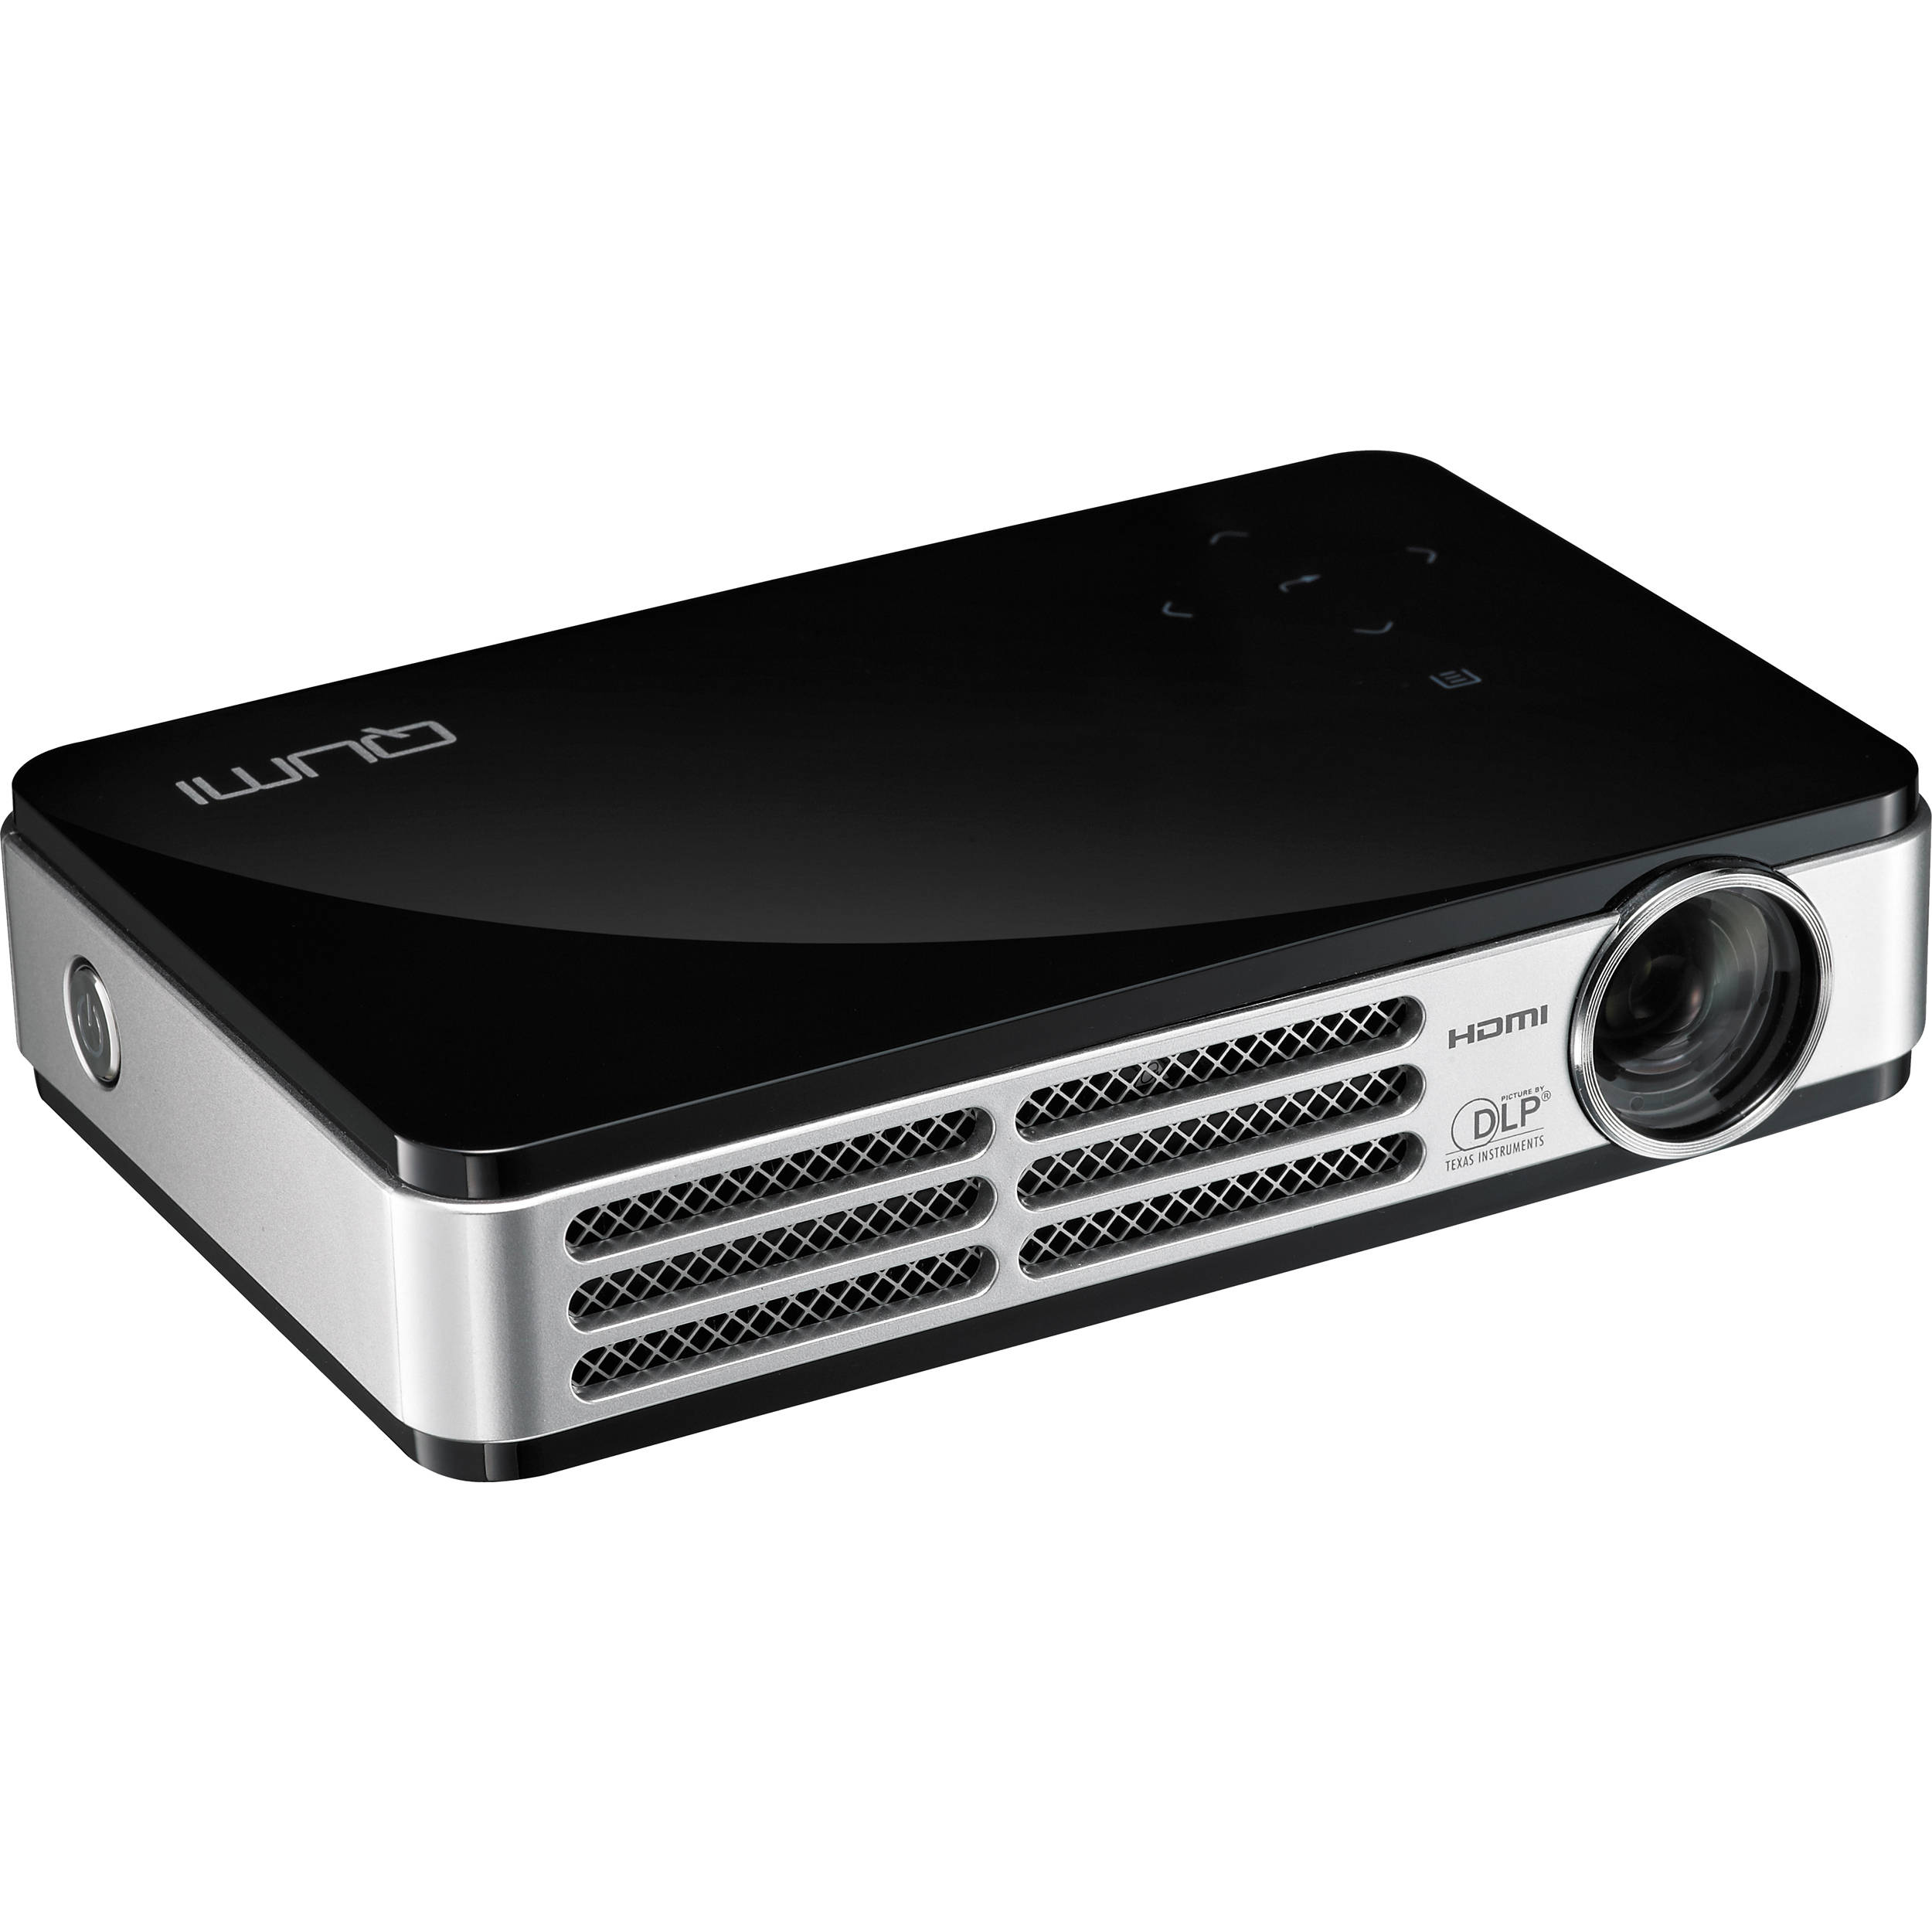 Vivitek Qumi Q5 HD LED Pocket Projector Q5-BK, Black